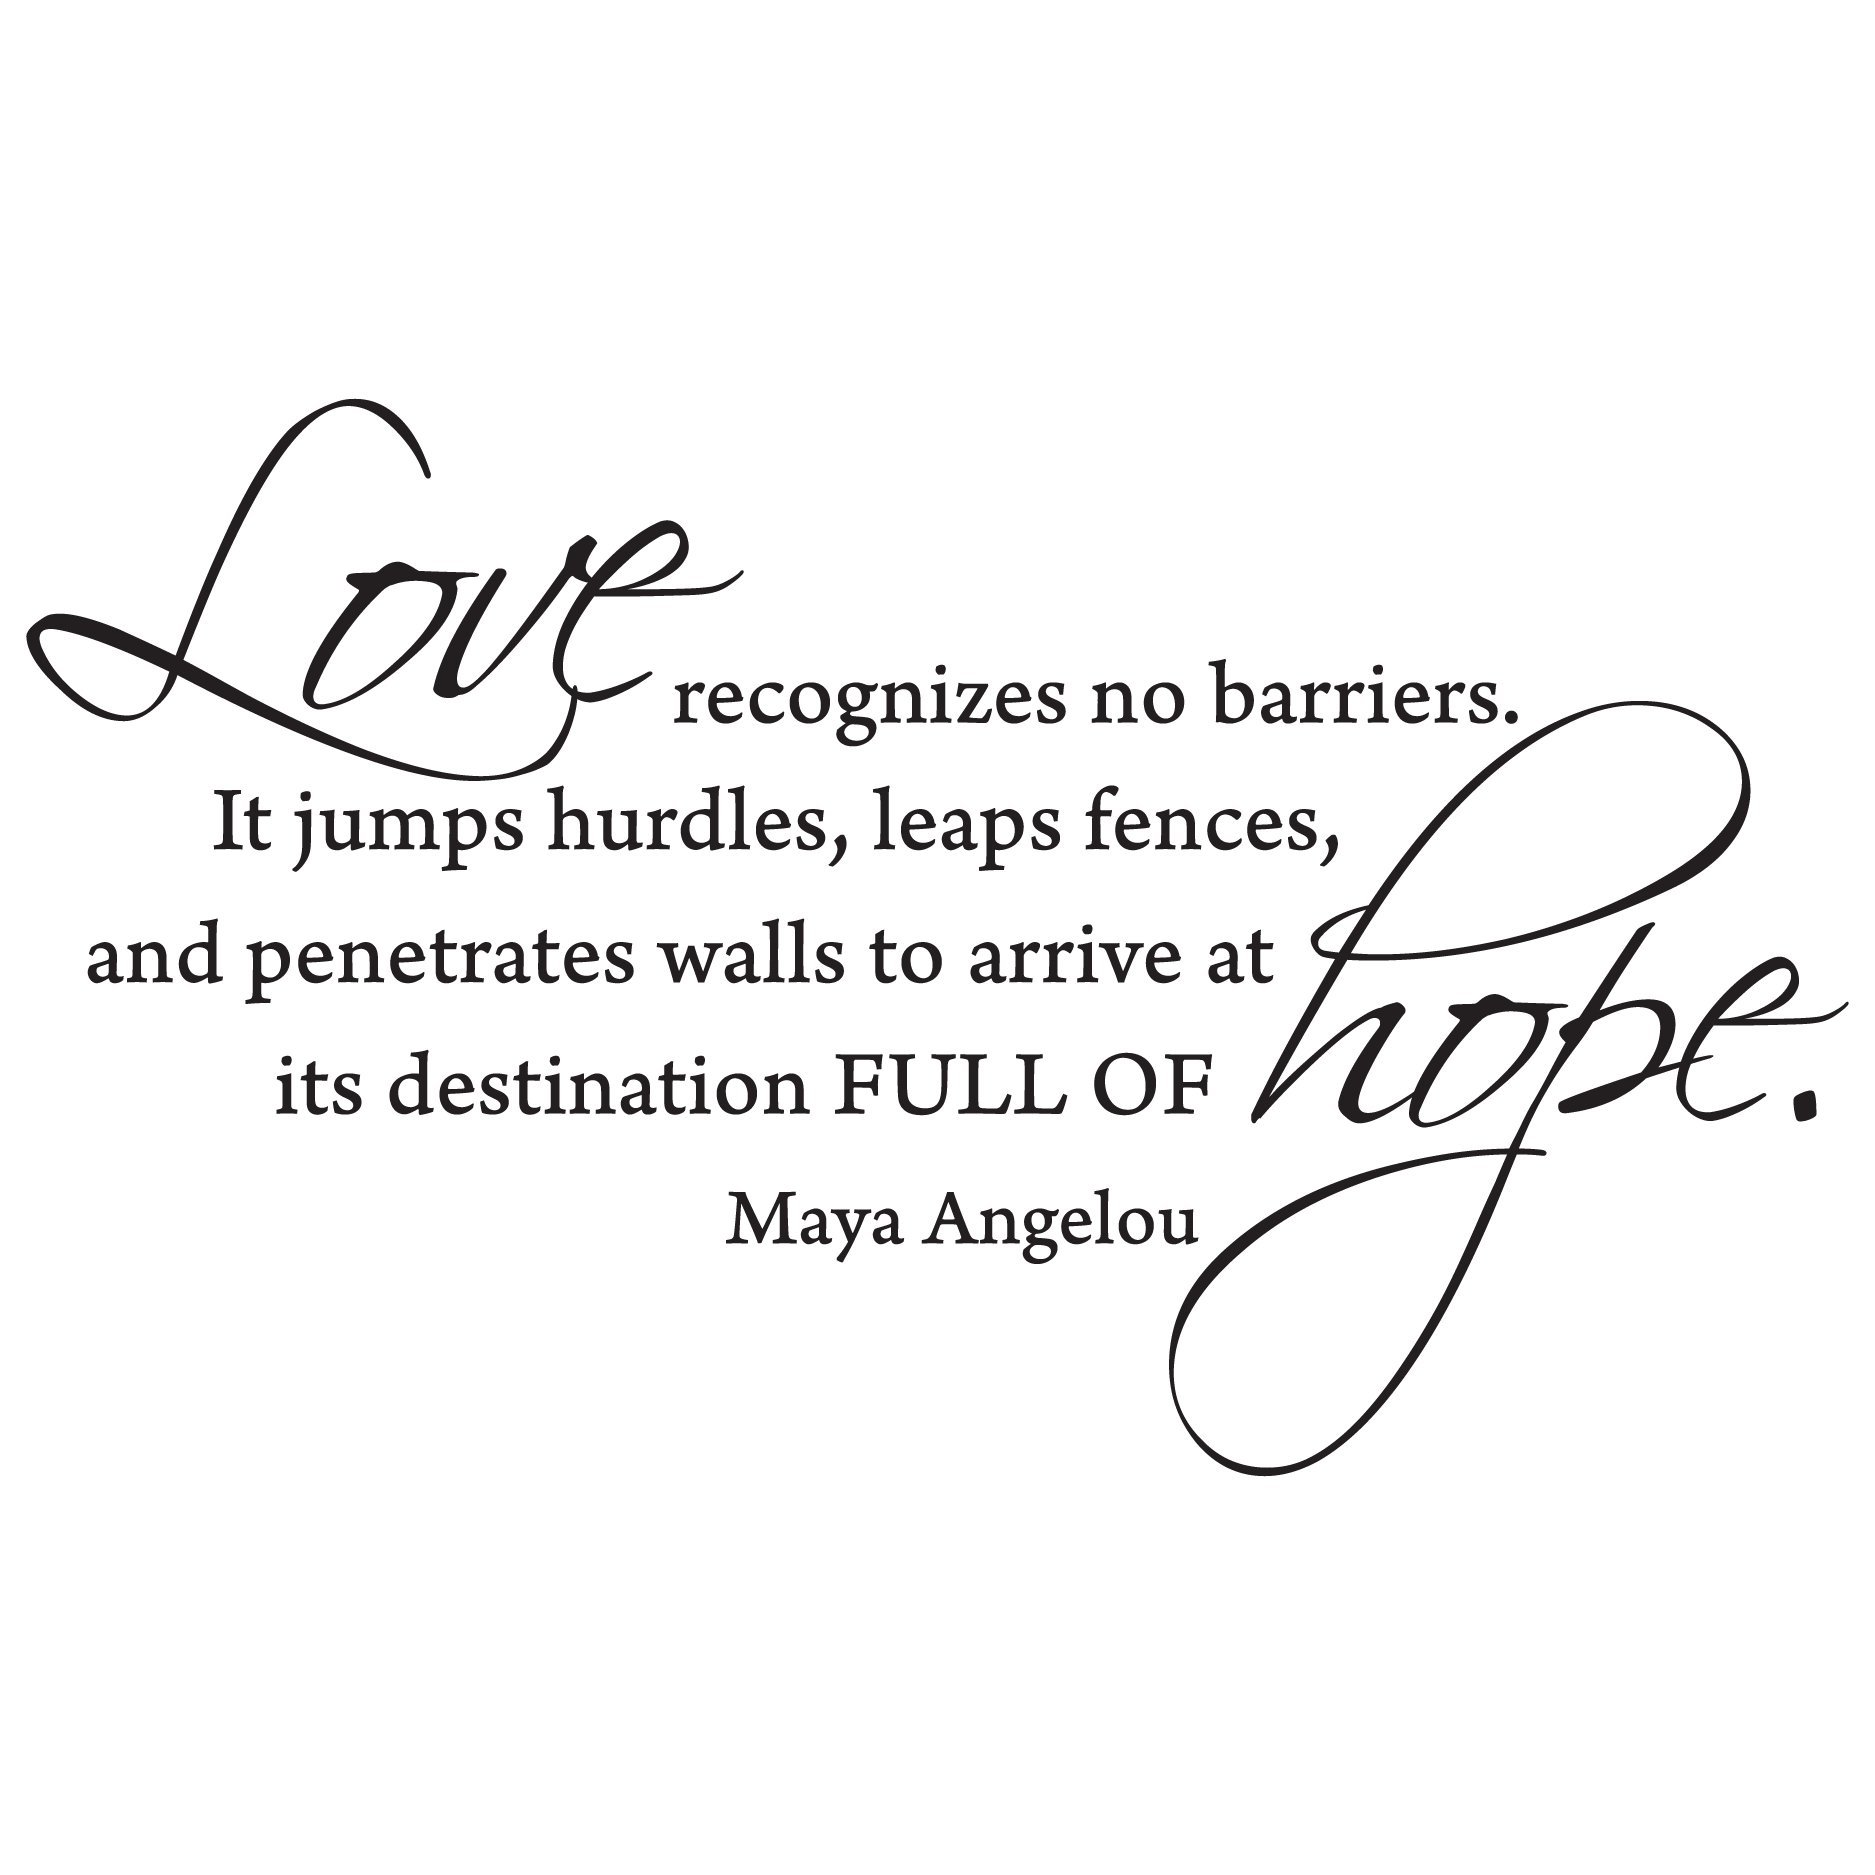 Maya Angelou Quotes About Friendship Love Recognizes No Barriers Wall Quotes™ Decal  Wallquotes